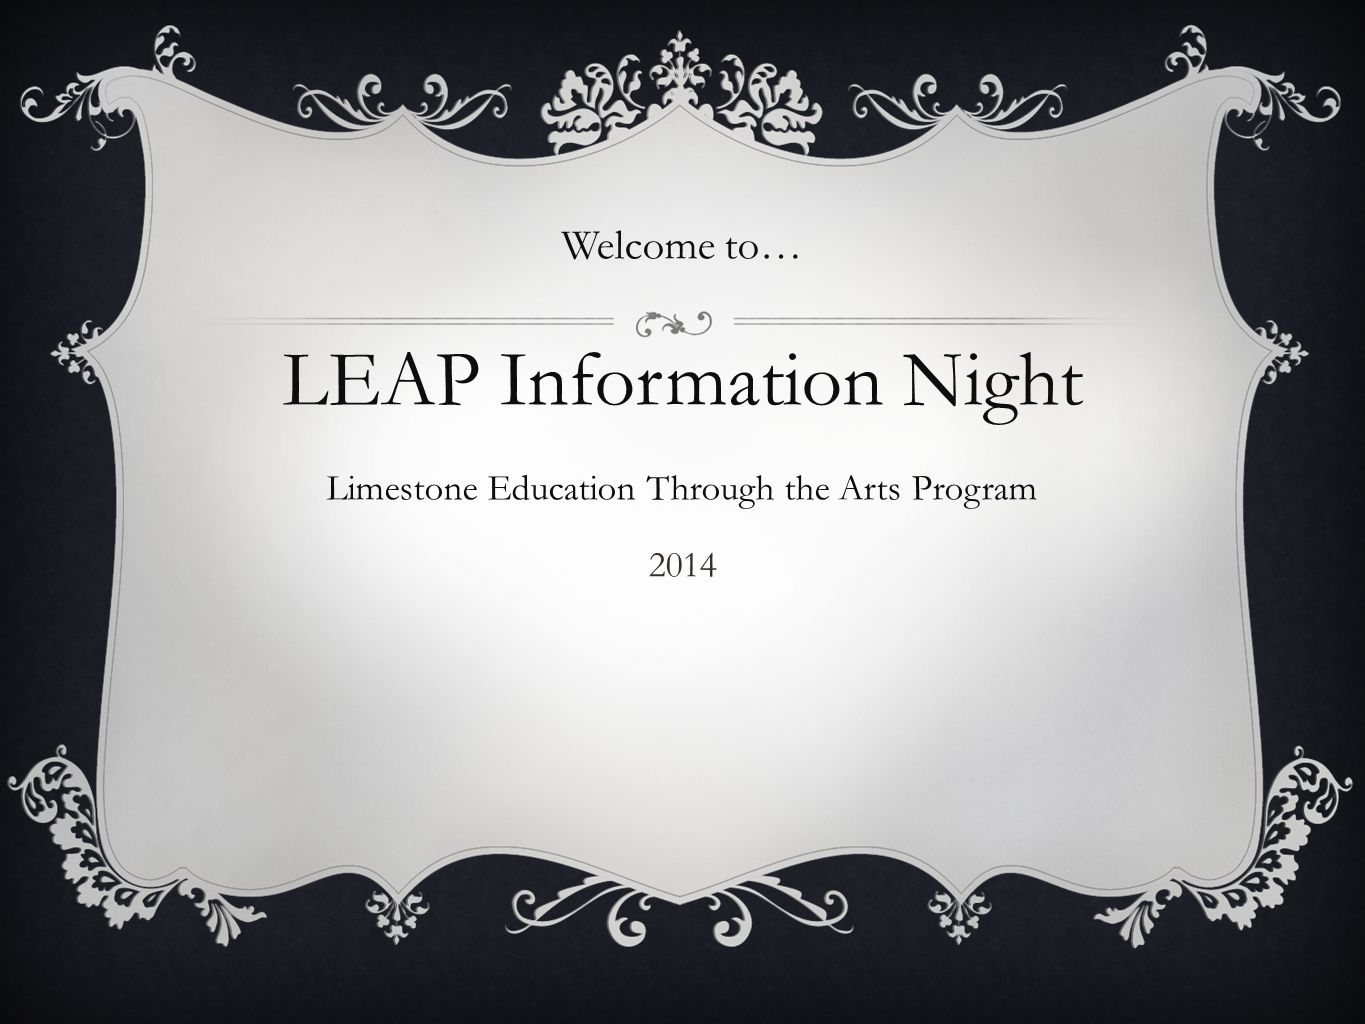 LEAP Information Night